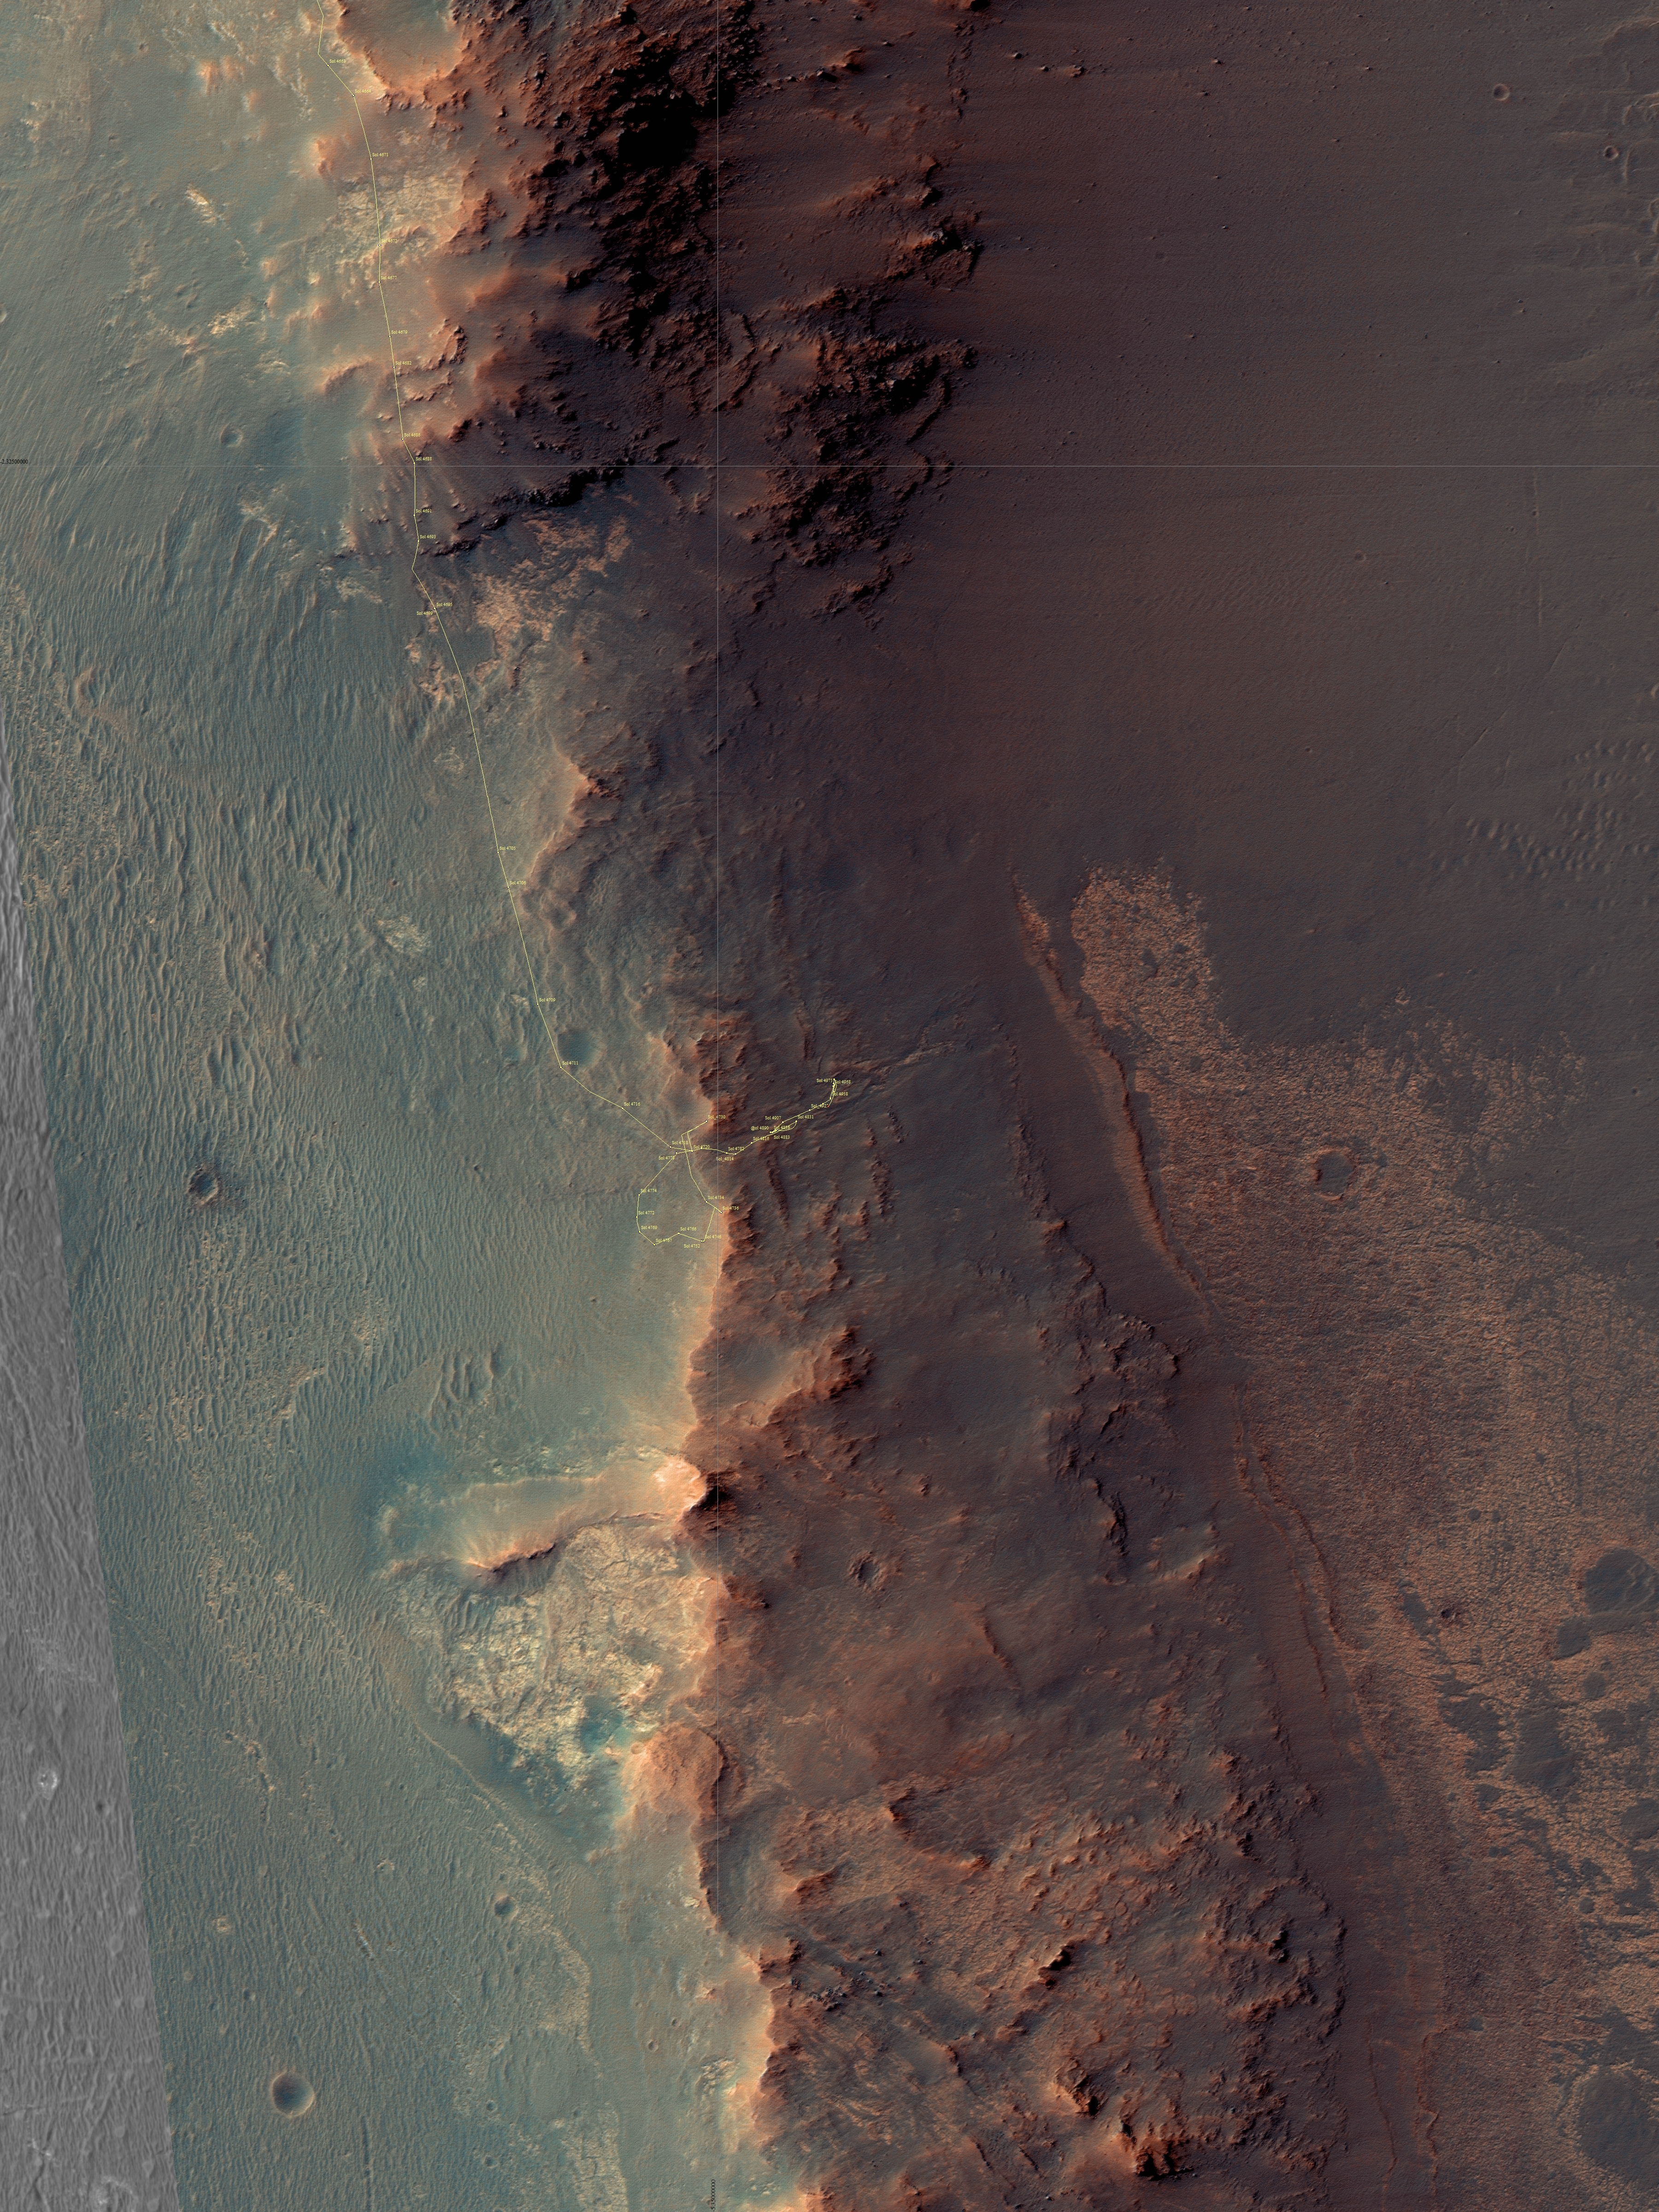 http://planetary.s3.amazonaws.com/assets/images/mer_updates/2018-02/20180306_4-Markng-5000-sol-in-Perverance-Valley-Sol4997_1.jpg